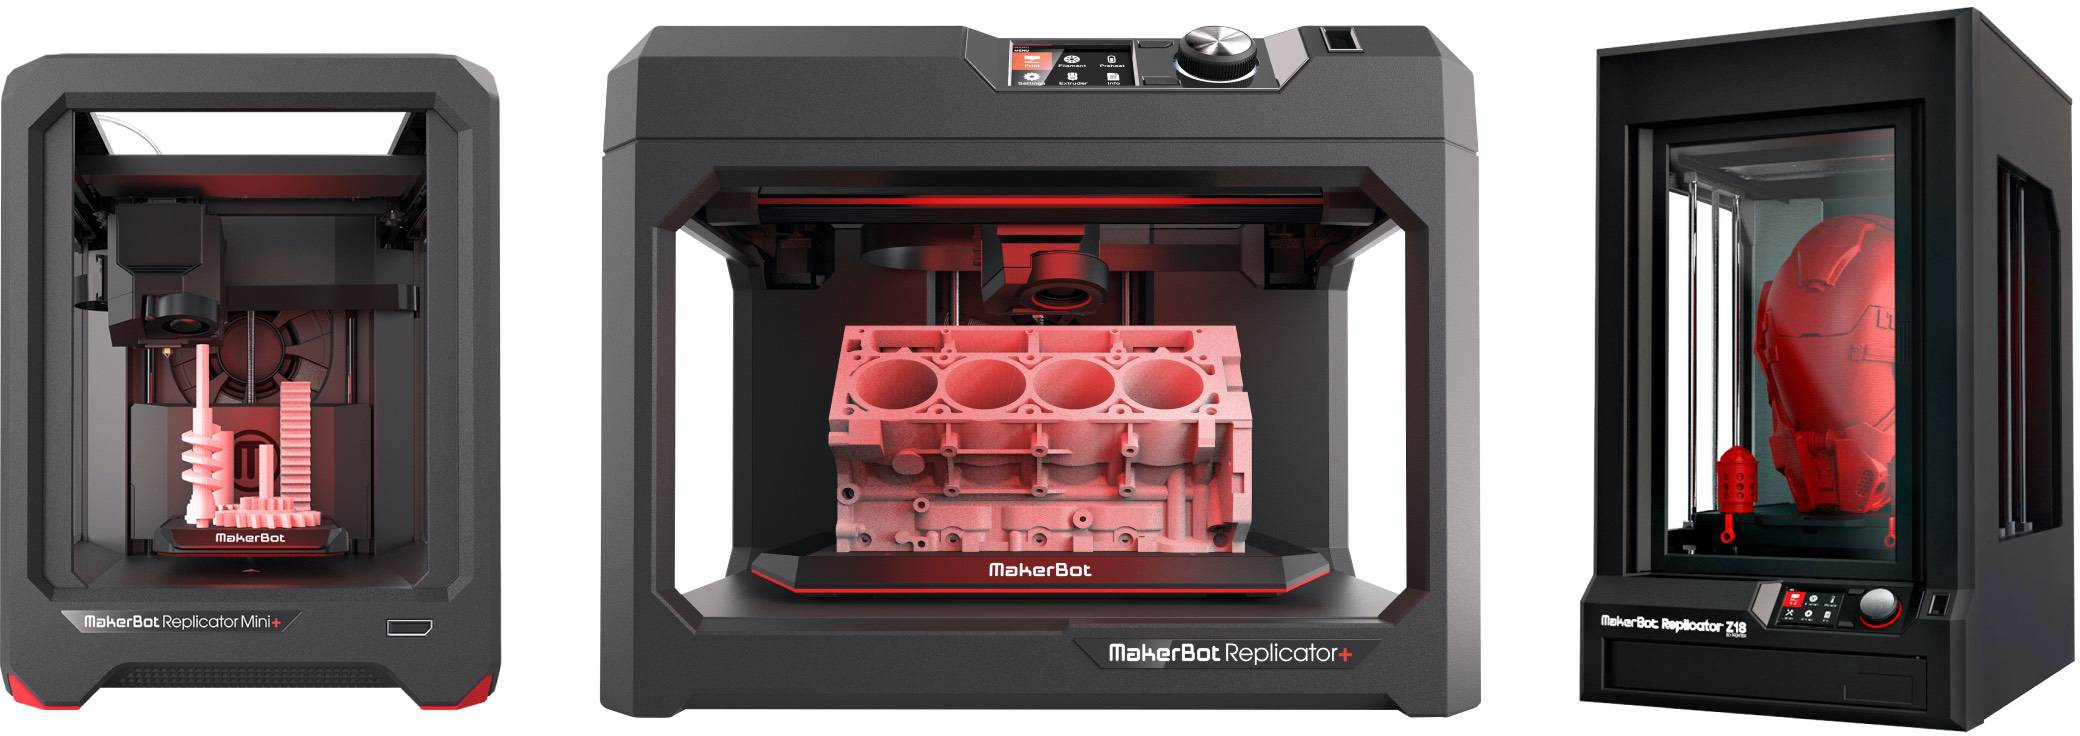 makerbot-replicator-desktop screenshot